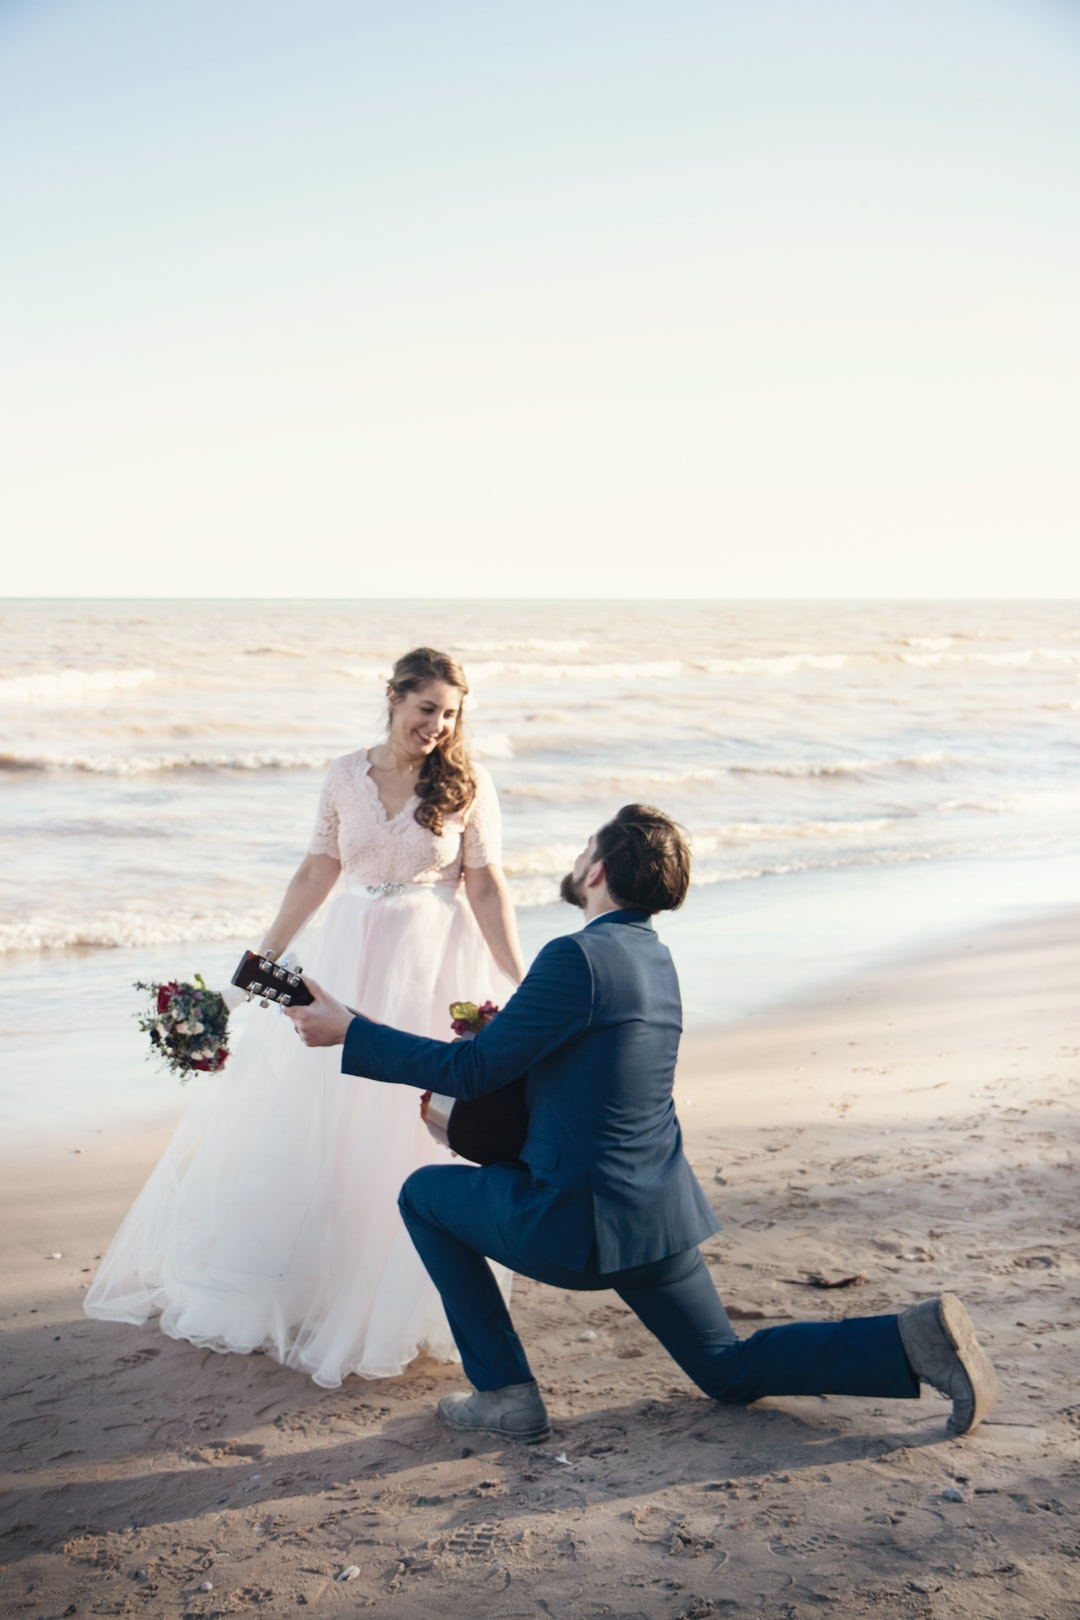 Bride and groom on beach with groom on bended knee with guitar signing a song he wrote for his bride